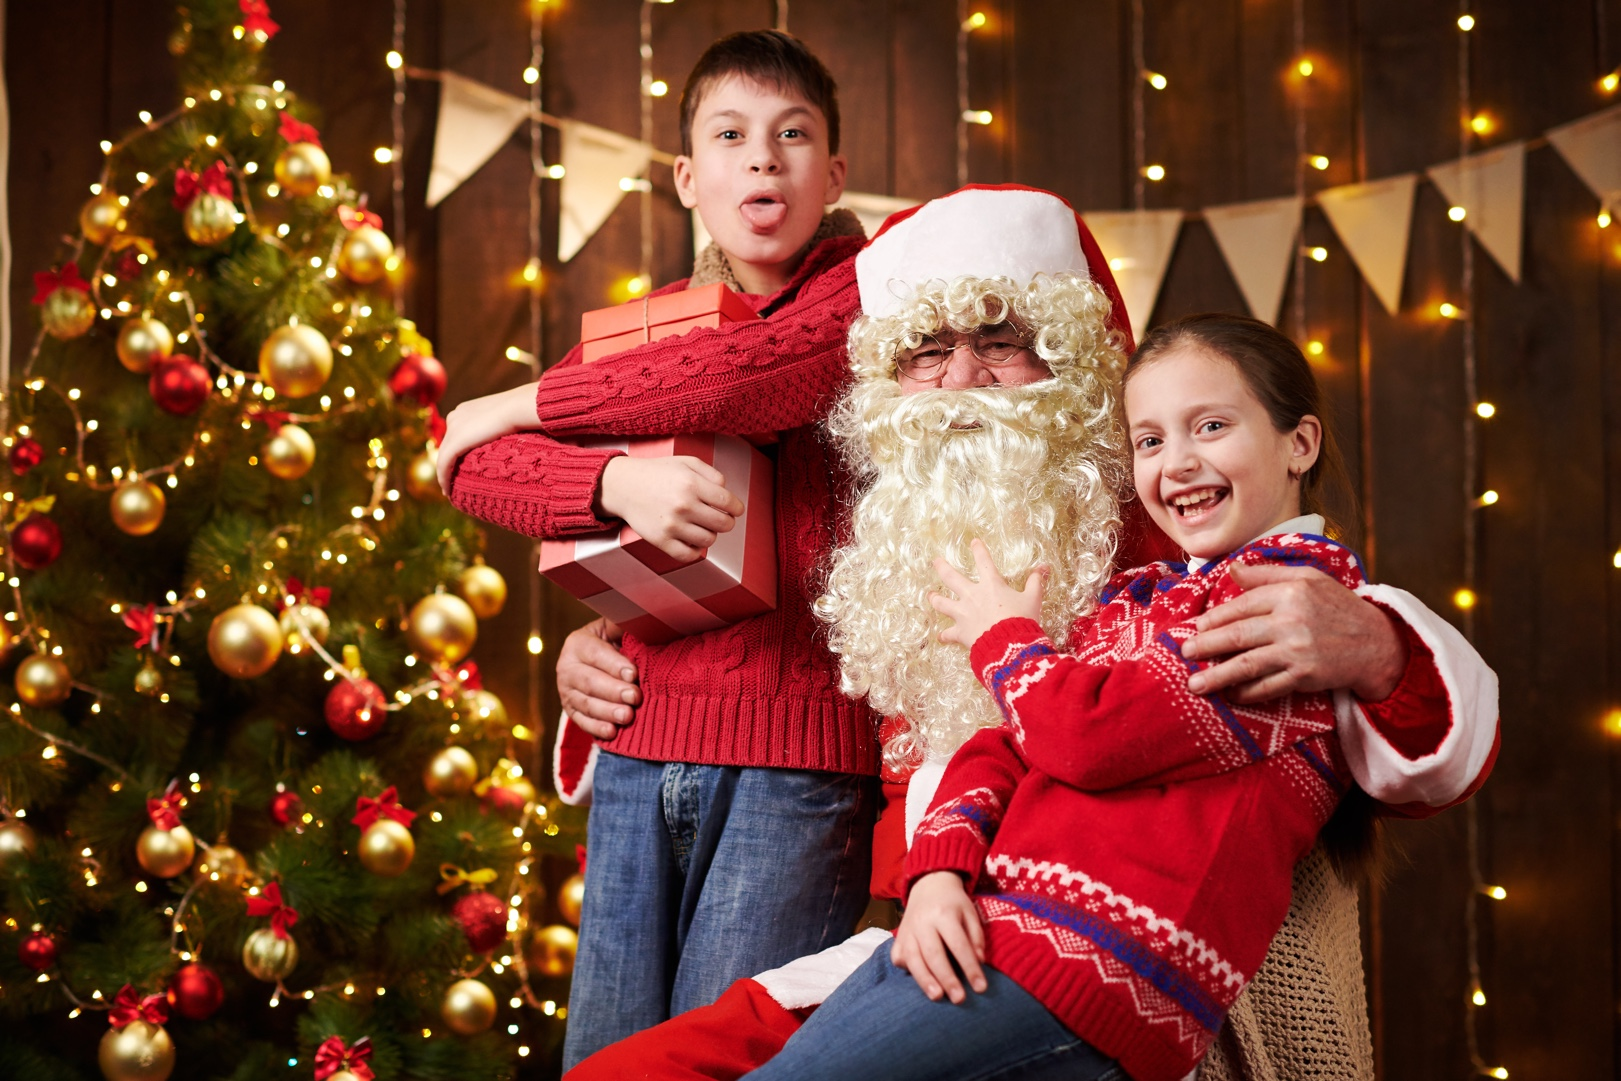 Santa Claus and child boy and girl posing together indoor near decorated xmas tree with lights, they talking, smiling and accepting gifts - Merry Christmas and Happy Holidays!